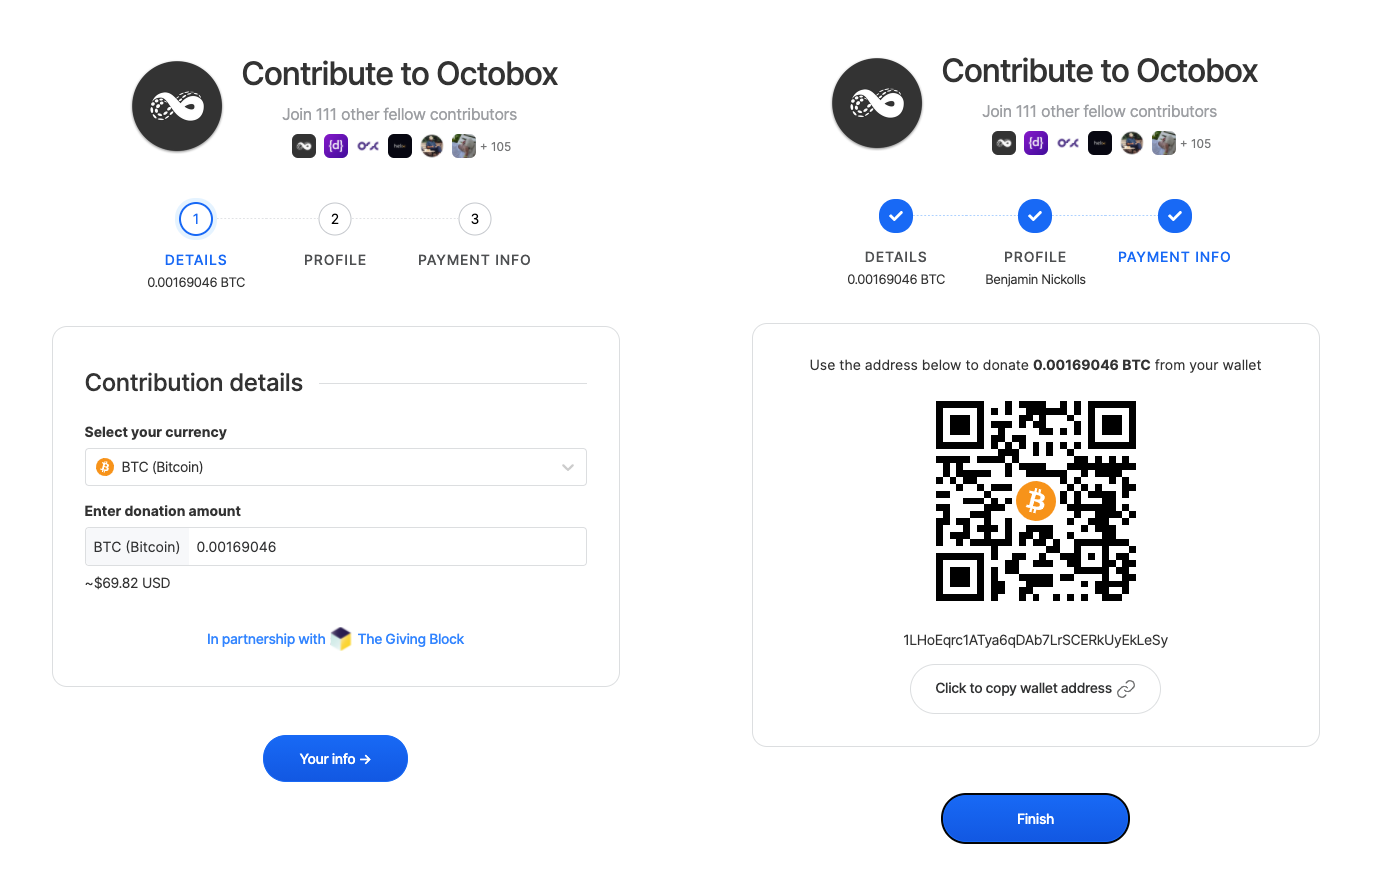 Image showing process for dontating cryptocurrency. Screen left shows a contribution to the Octobox Collective in progress. Screen right shows payment information including a wallet address.